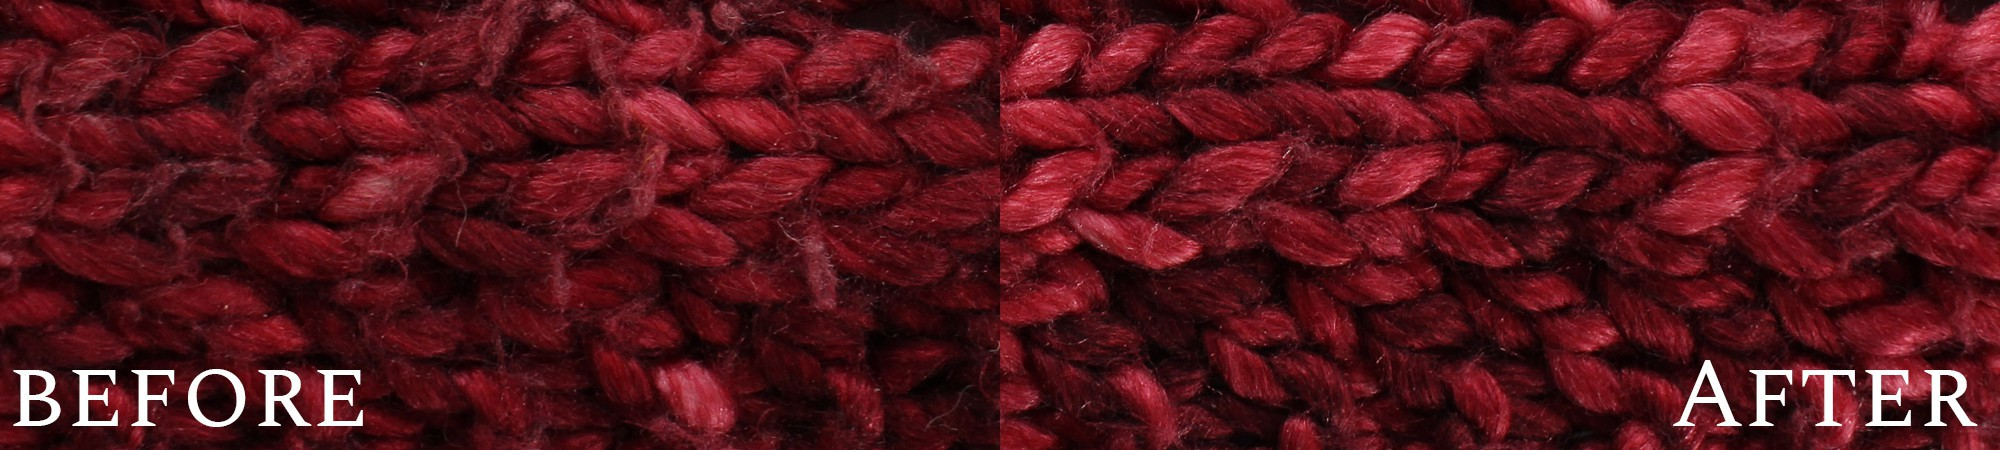 Shave your knitwear VIDEO + before & after photos